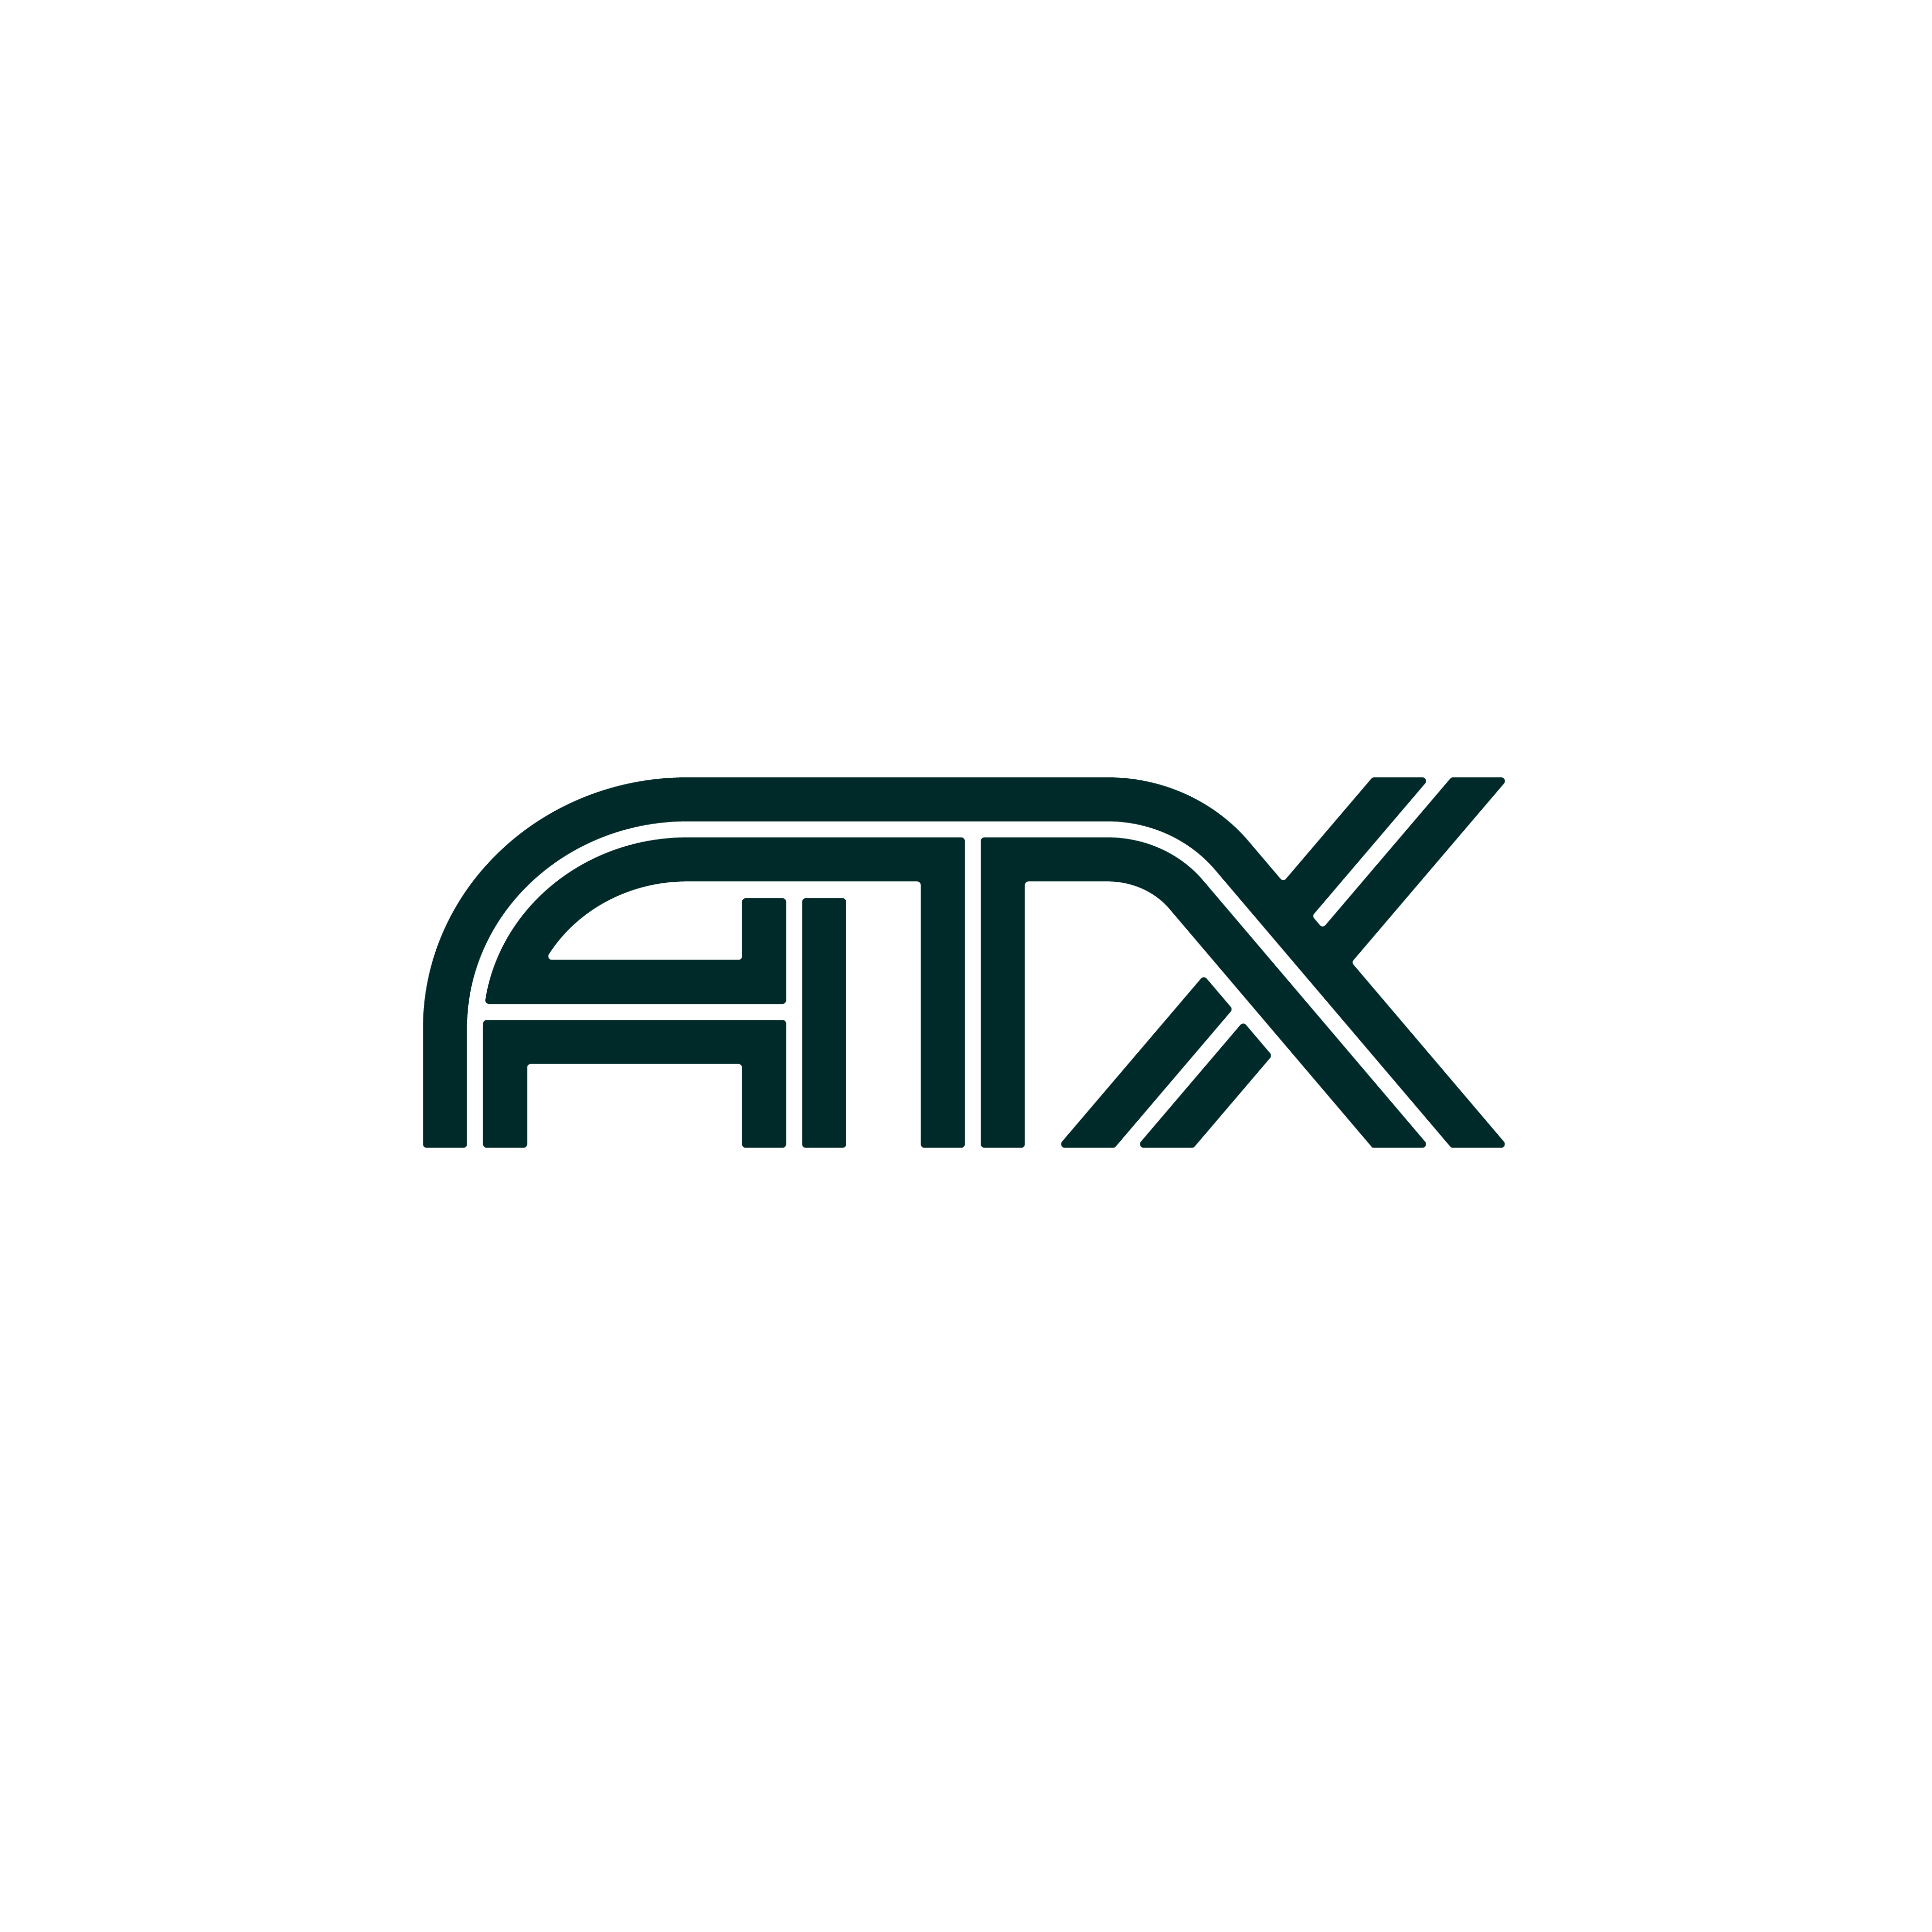 ATX logo design by logo designer Matt Dawson for your inspiration and for the worlds largest logo competition